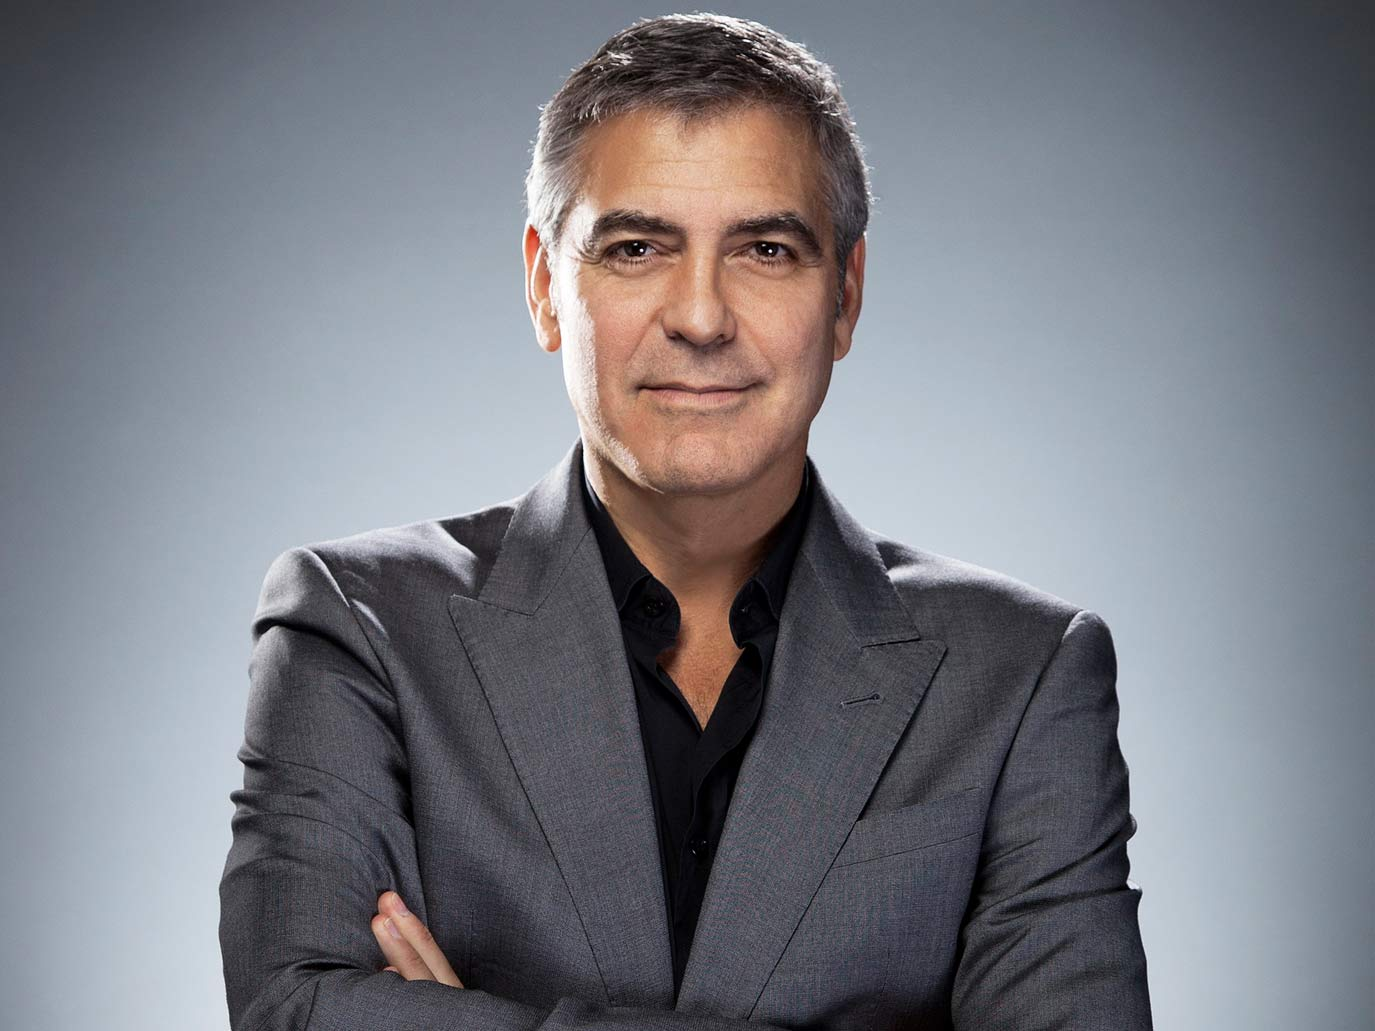 george-clooney-sexy-suit-hollywood-hot-sexiest-actor-men-movie-star-recent-gravity